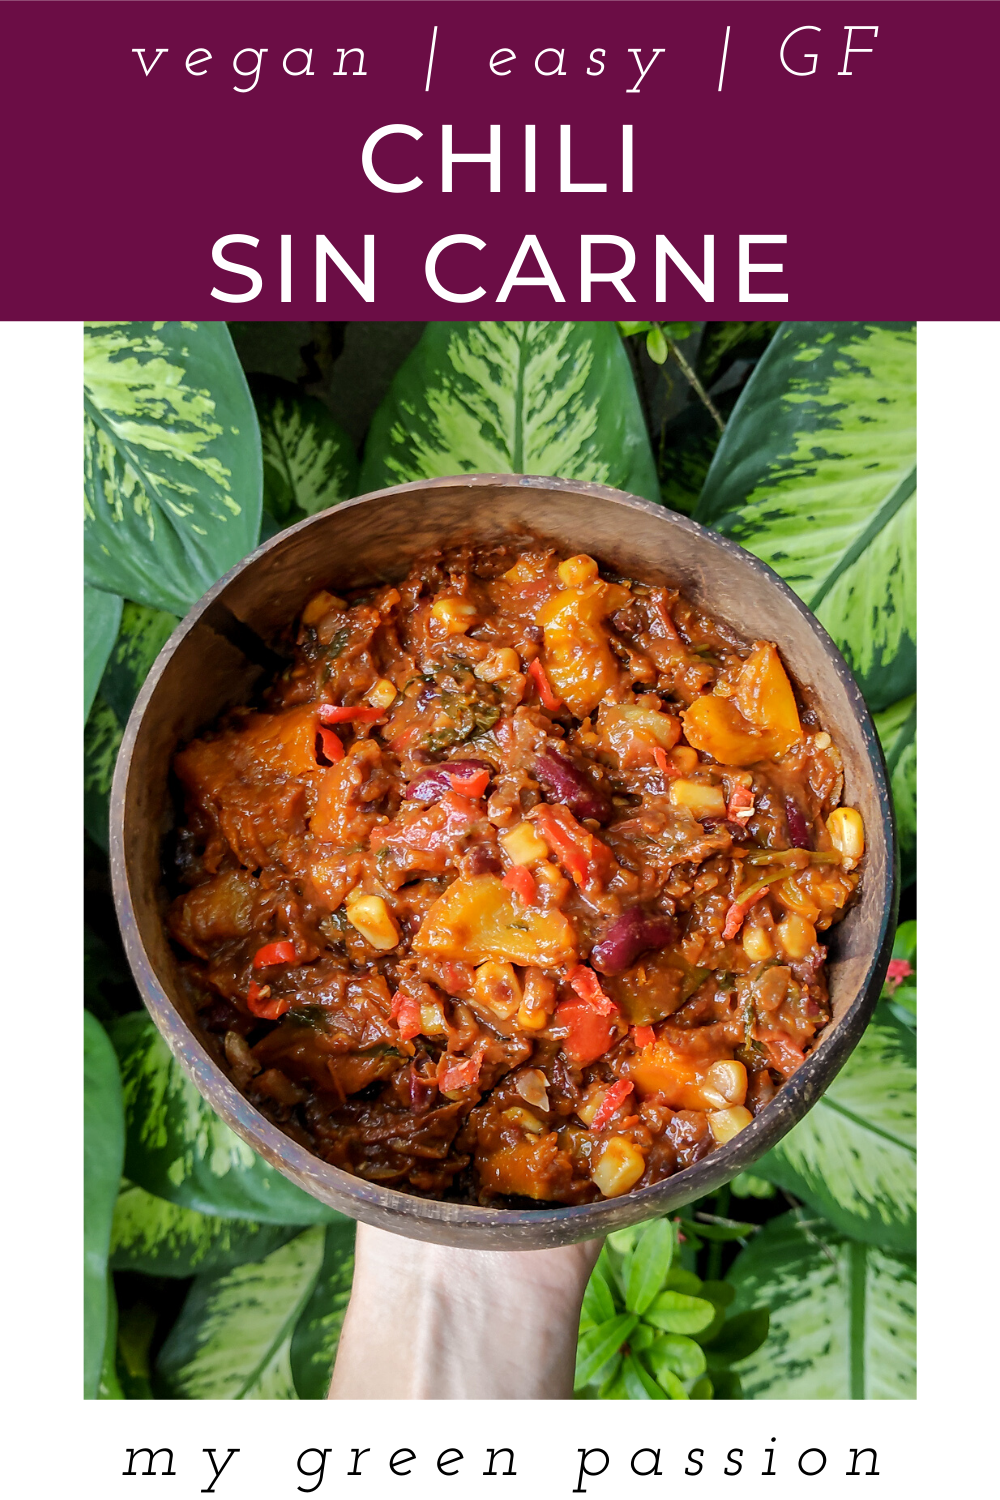 Chili Sin Carne Vegan Recipes My Green Passion Recipe In 2020 Vegan Chili Meatless Chili Vegan Side Dishes